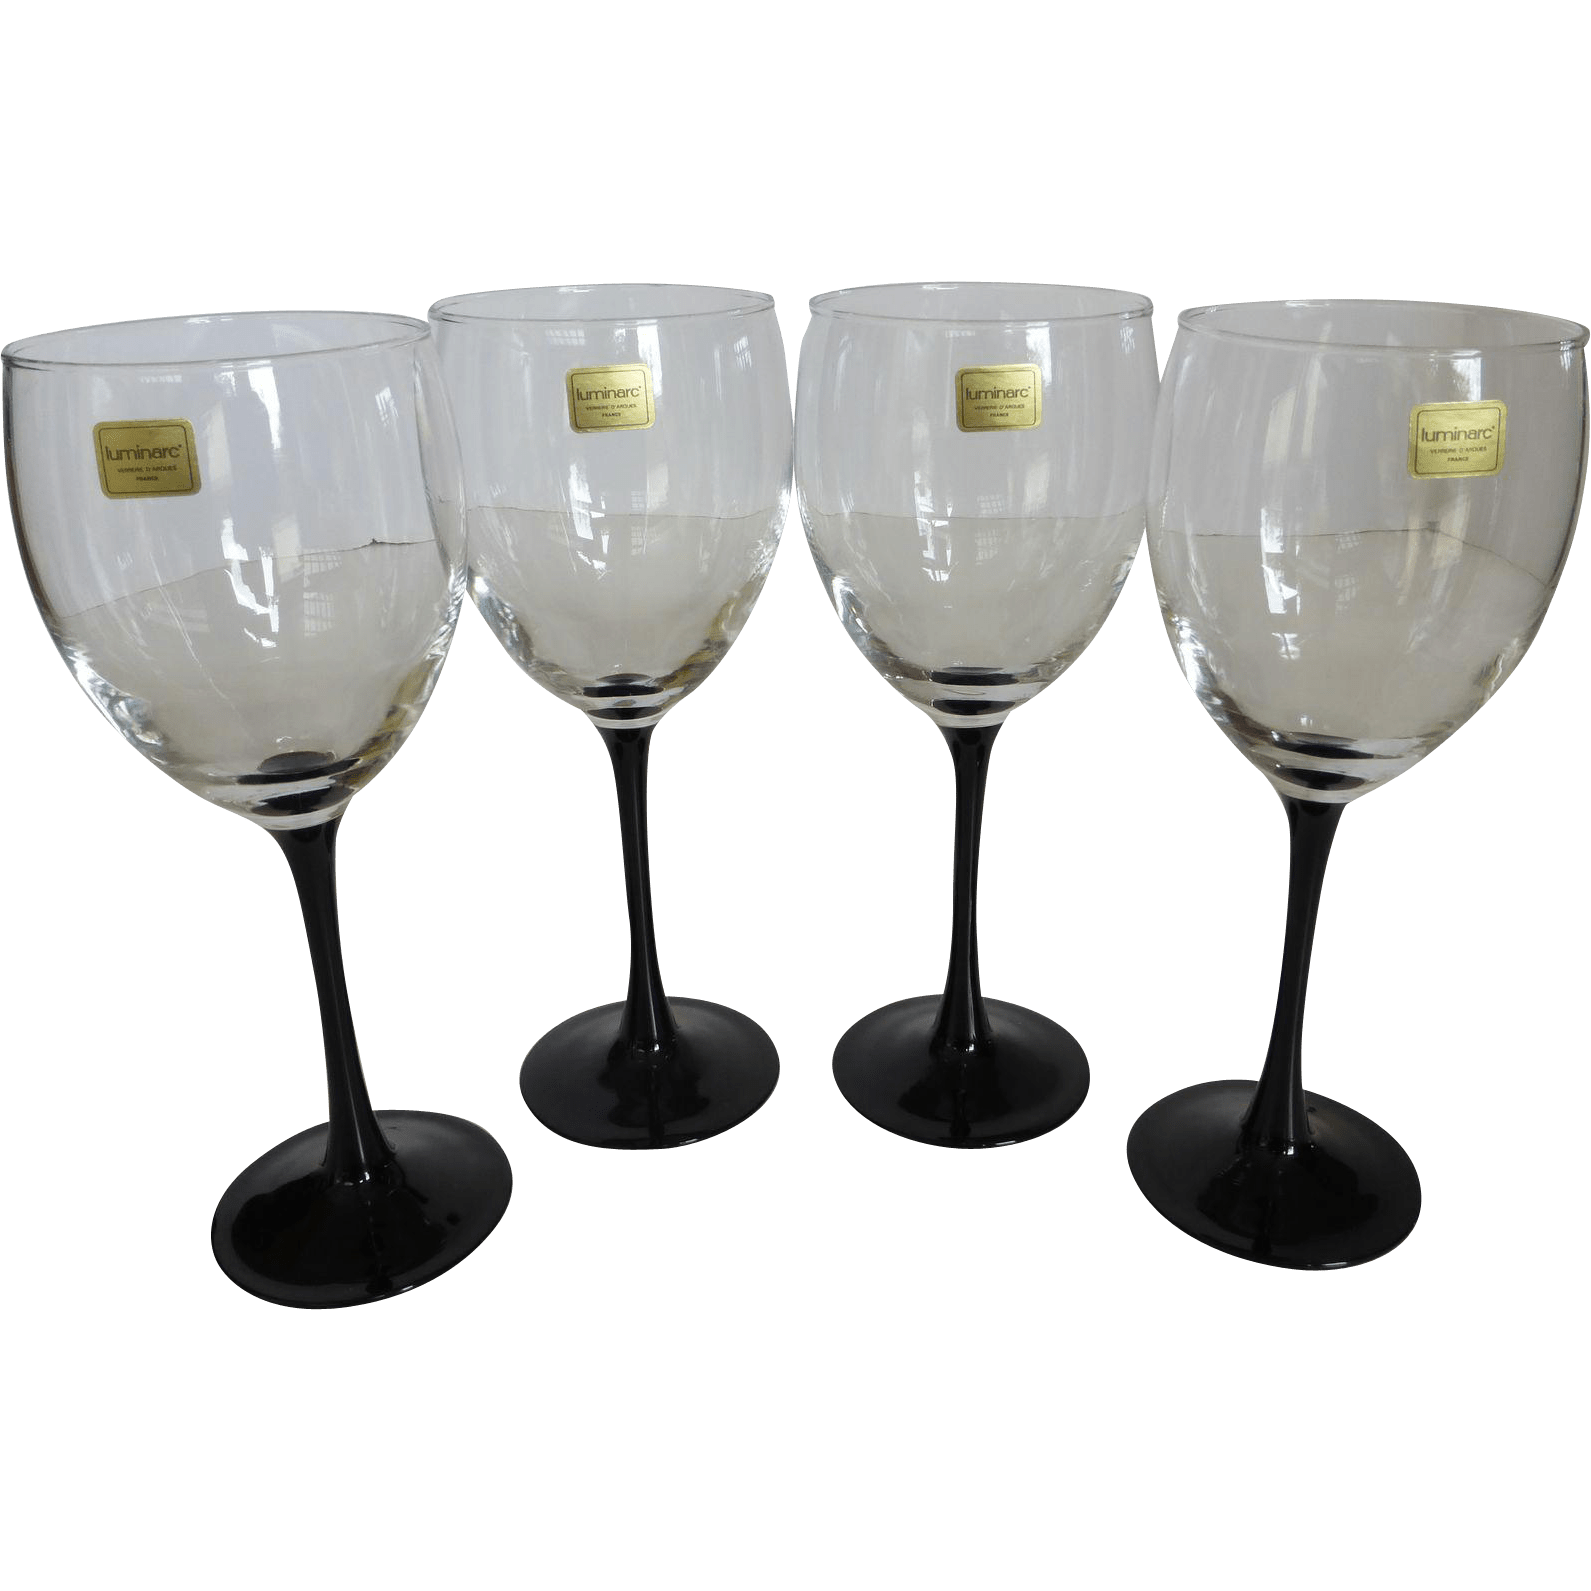 Wine Glasses With Black Stems Vintage Luminarc France Black Stem Crystal Wine Glasses